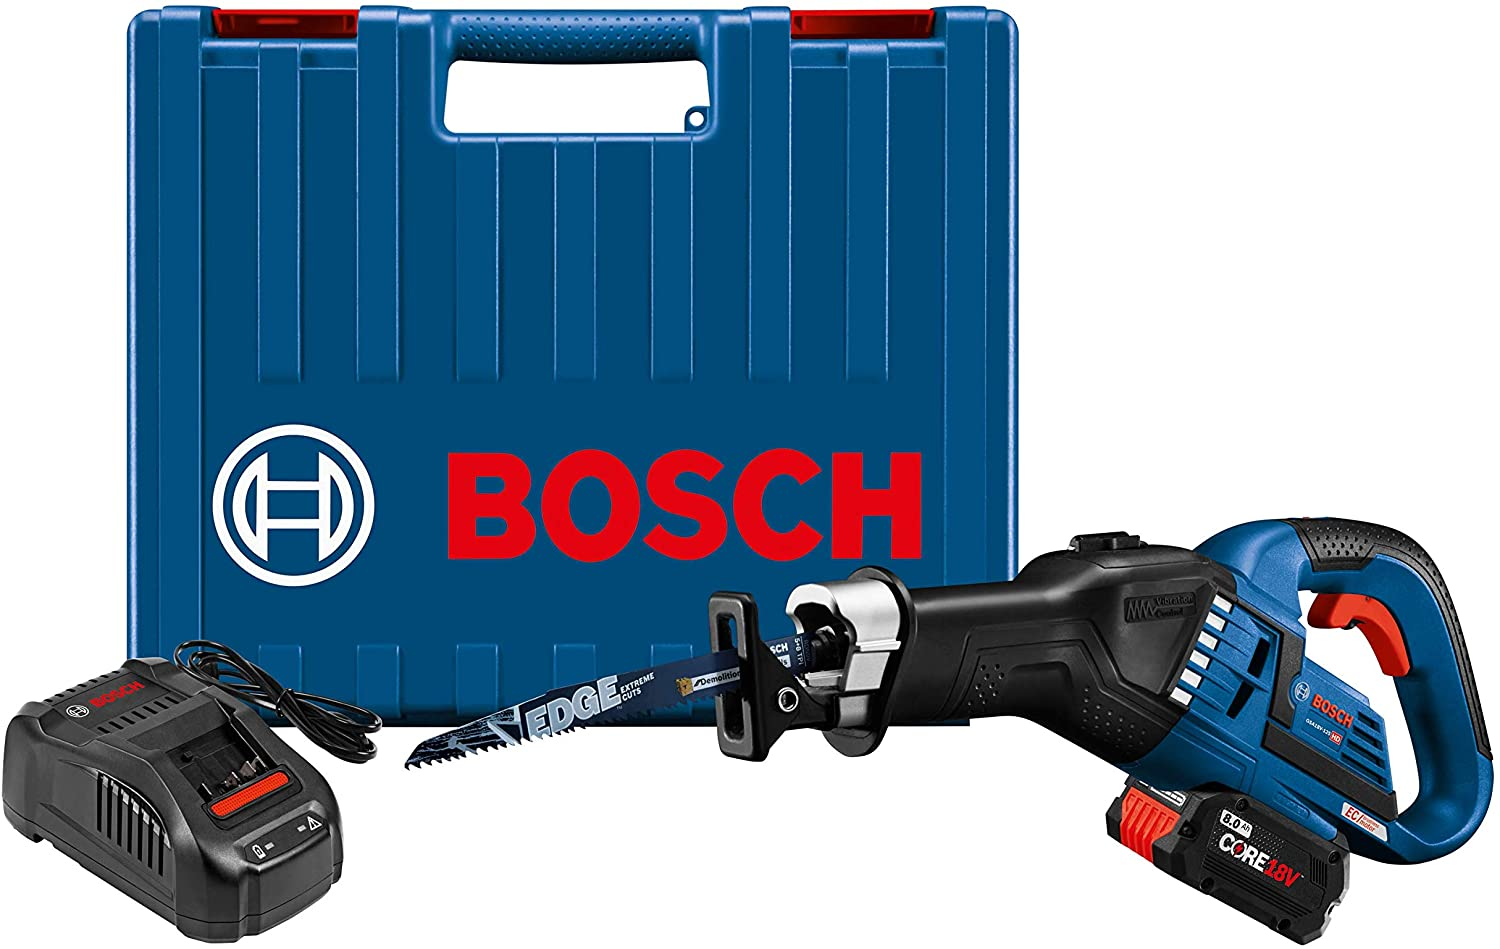 Bosch GSA18V-125K14A 18V EC Brushless 1.25 In. Stroke Multi-Grip Reciprocating Saw